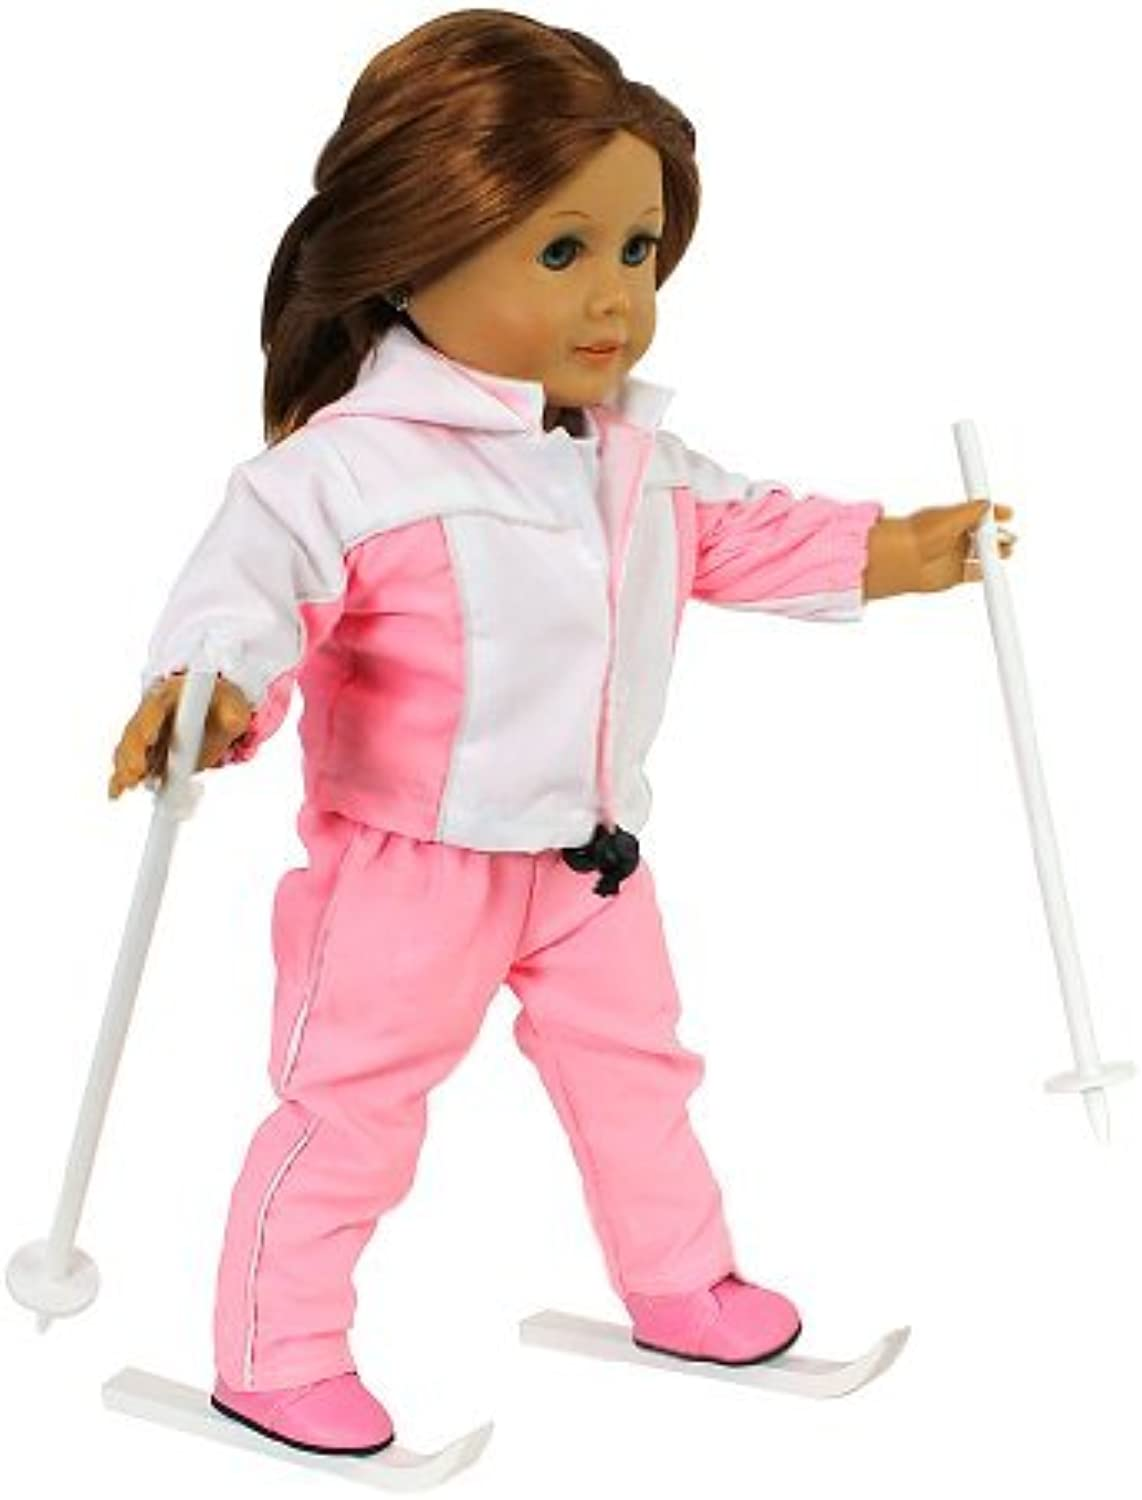 Doll Clothes for 18 Dolls  6 Piece Ready to Ski Skiing Outfit  By Dress Along Dolly (Includes Shirt, Pants, Jacket, Boots, Poles, and Skis) by Dress Along Dolly